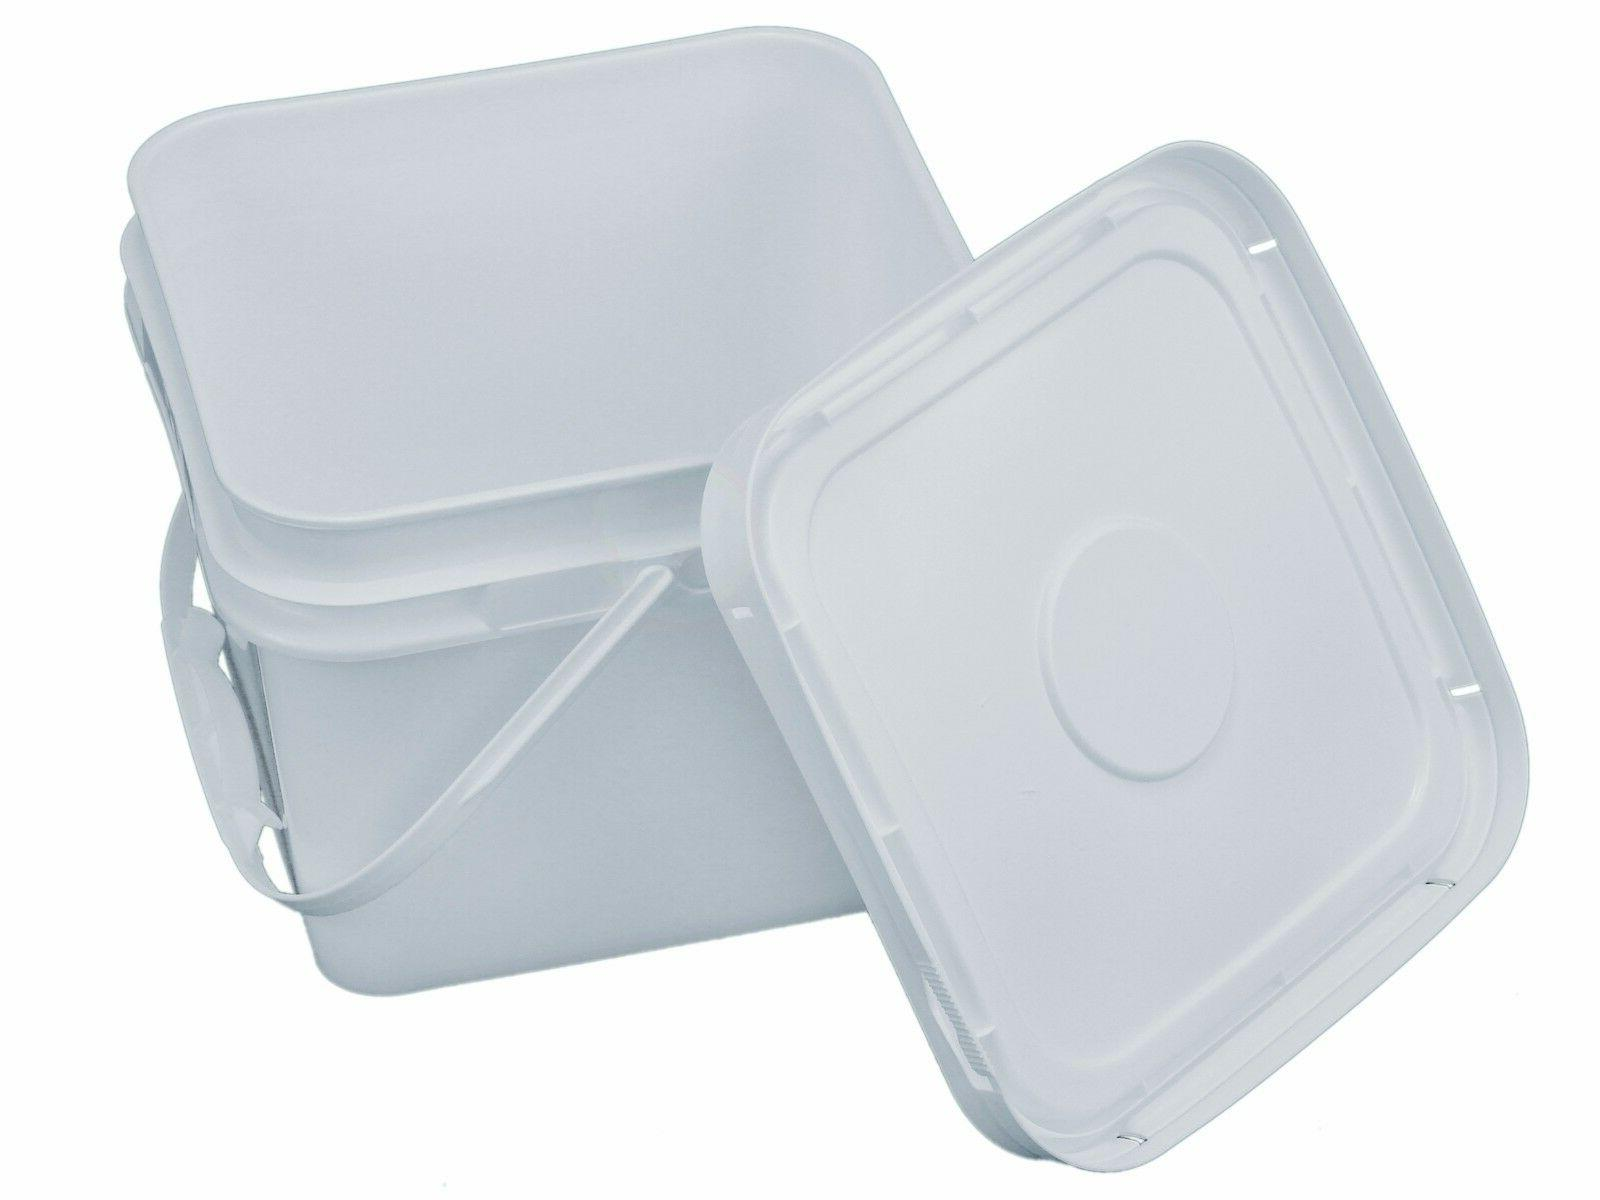 2 gallon square bucket with snap on